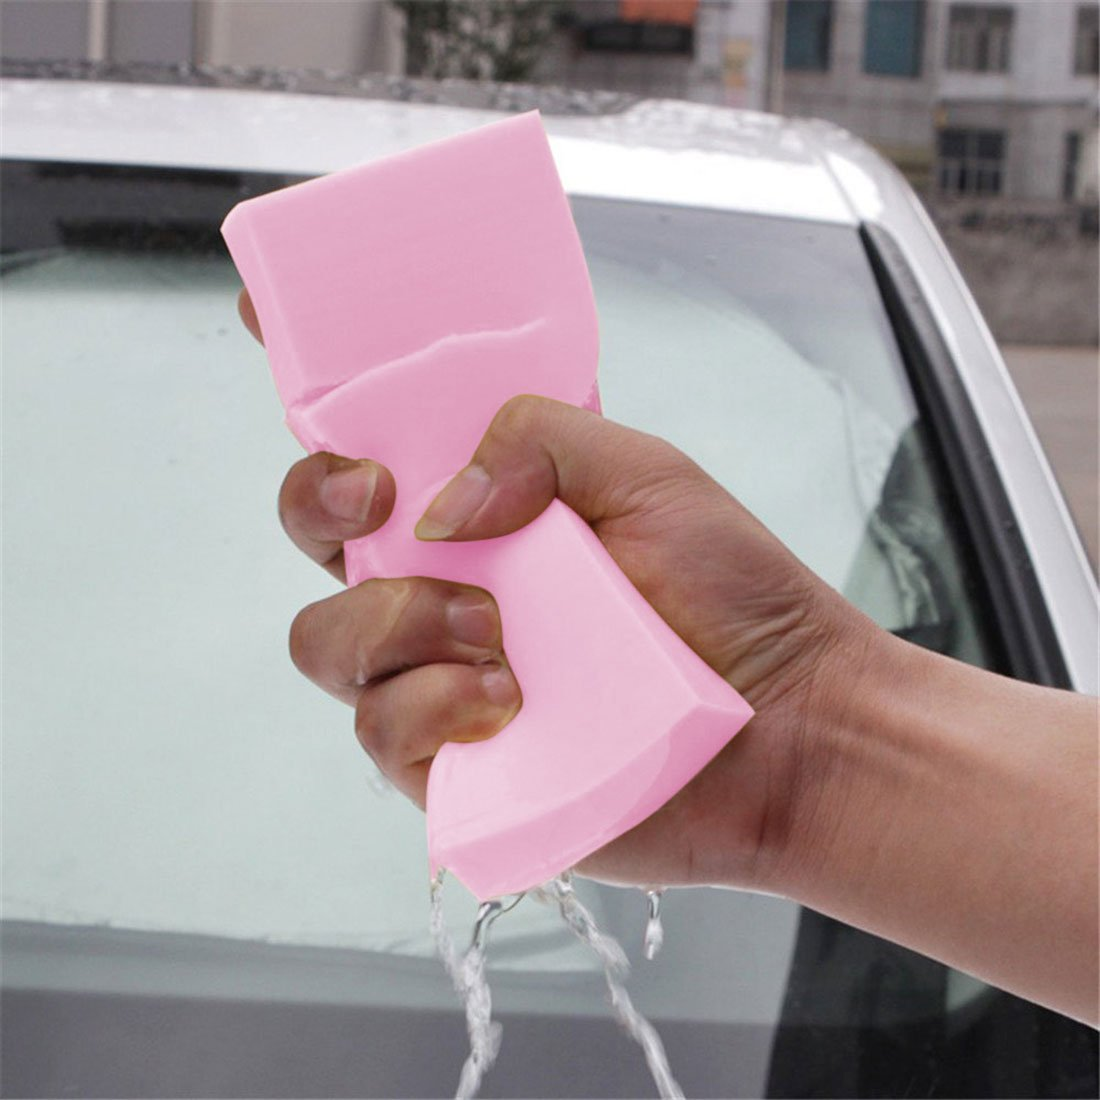 uxcell Car Boat Cleaning Clear PVA Suction Sponge Block for Cleaning Pink